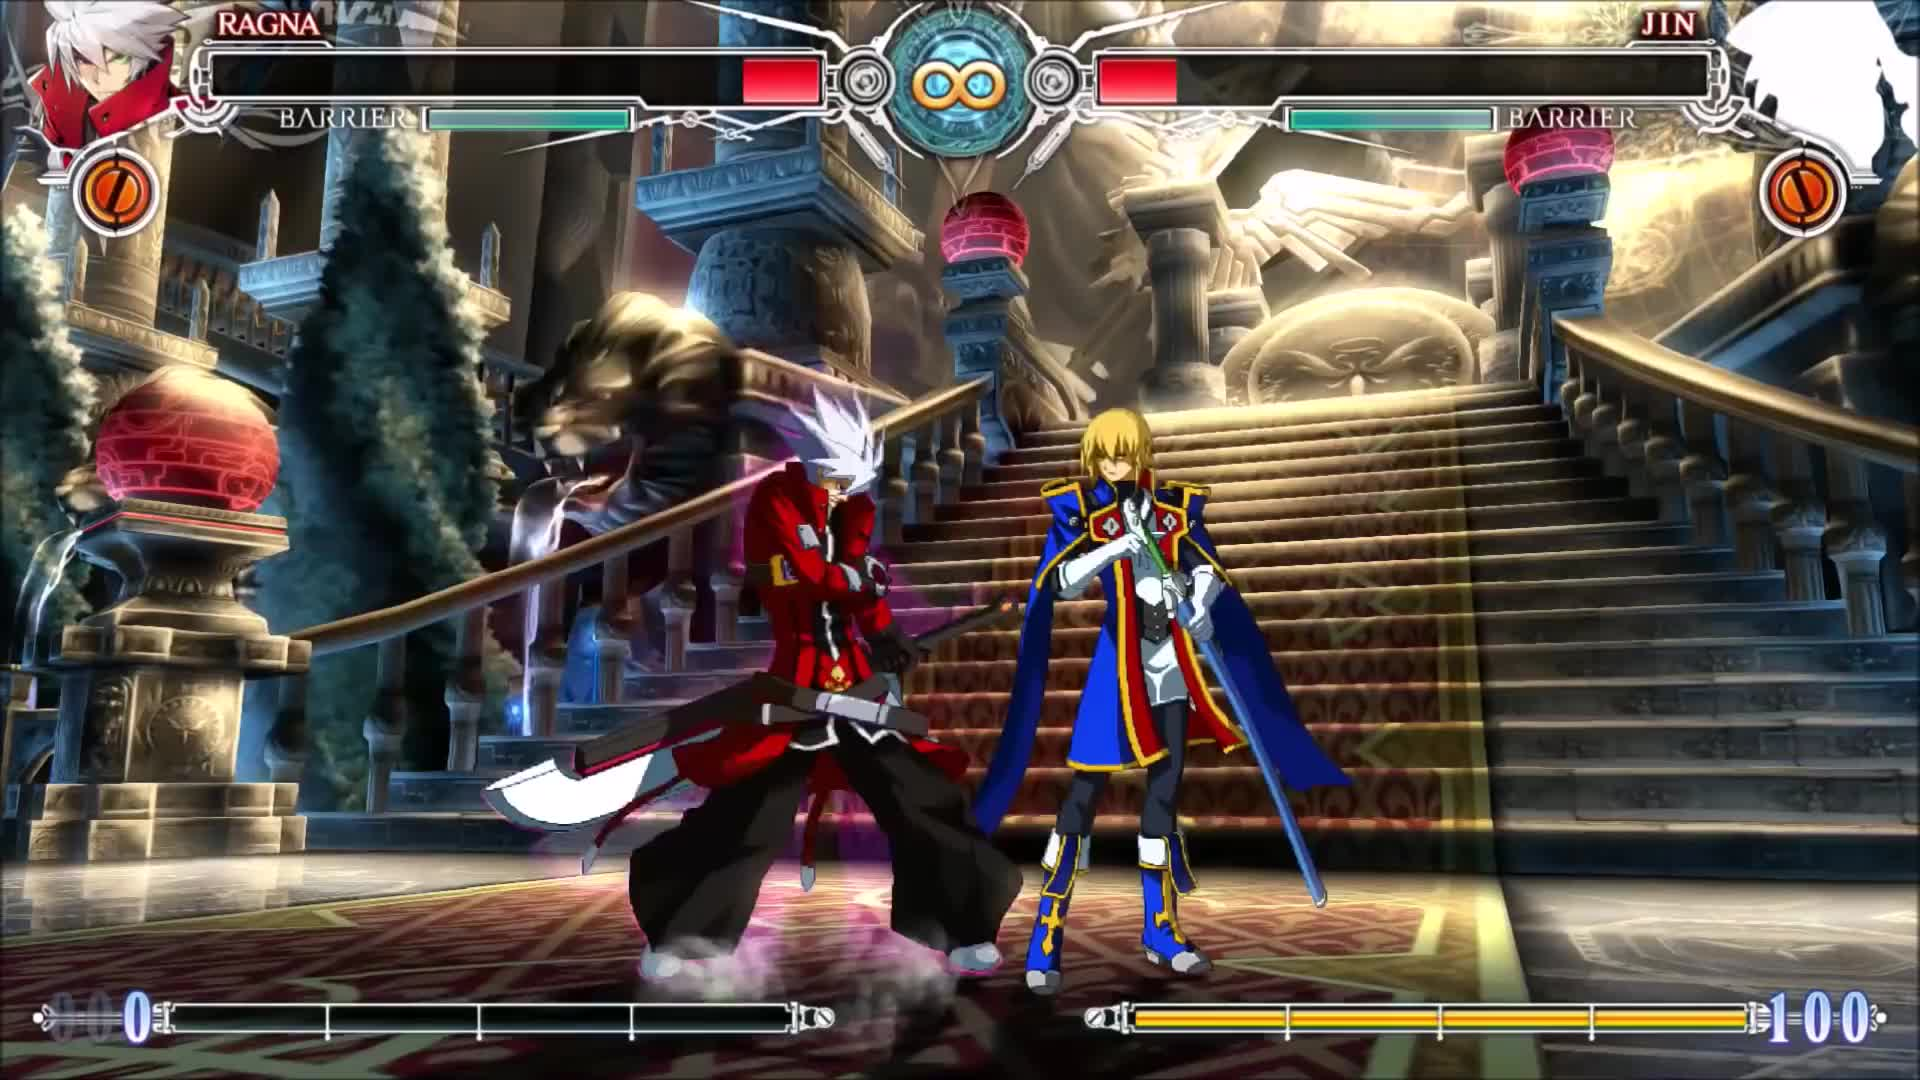 Gaming, Swillo & Bimmyquestion, advanced, astral, blazblue, central, combo, exhibition, fiction, finish, gameplay, showcase, style, Blazblue Central Fiction - All Character Astral Finish Including DLC Characters GIFs